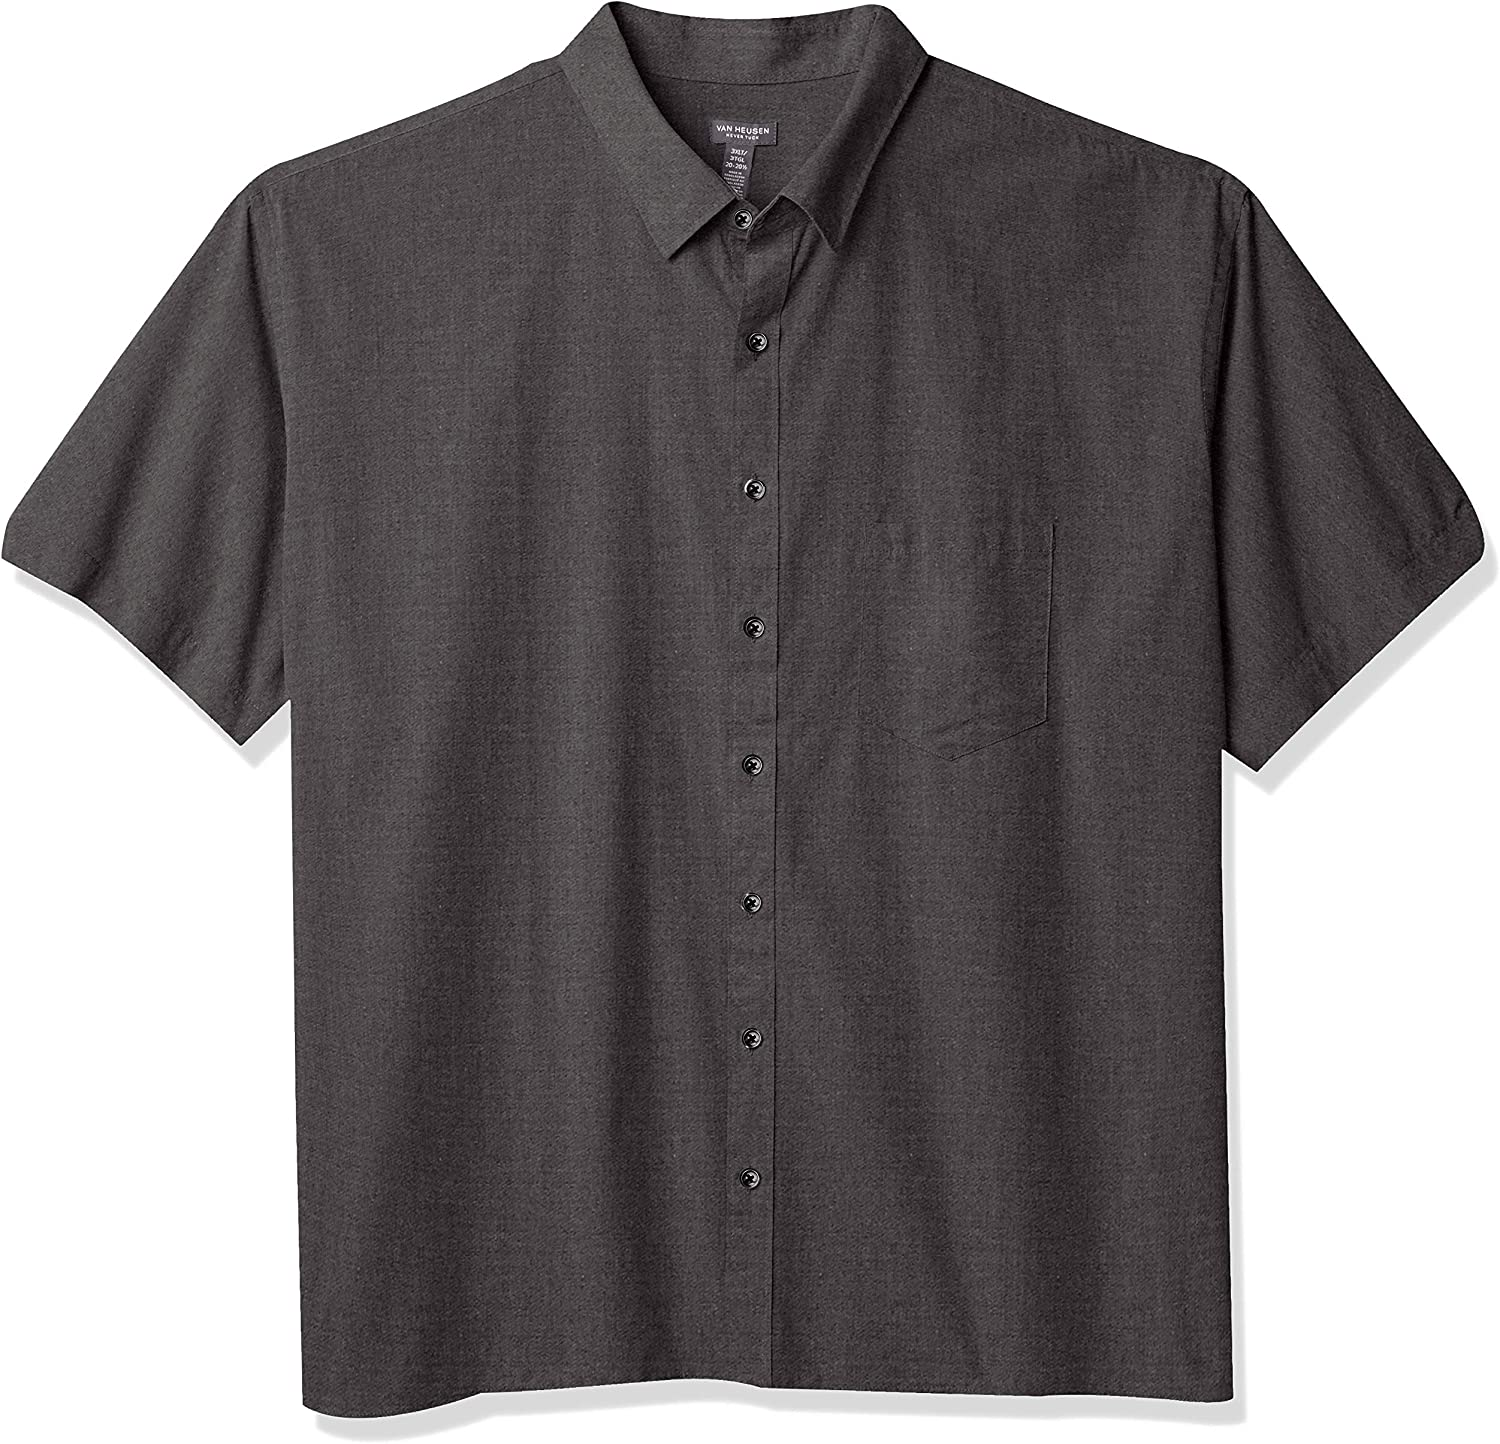 National products Van Heusen Men's Big Tall Never Short safety Tuck and Sleeve